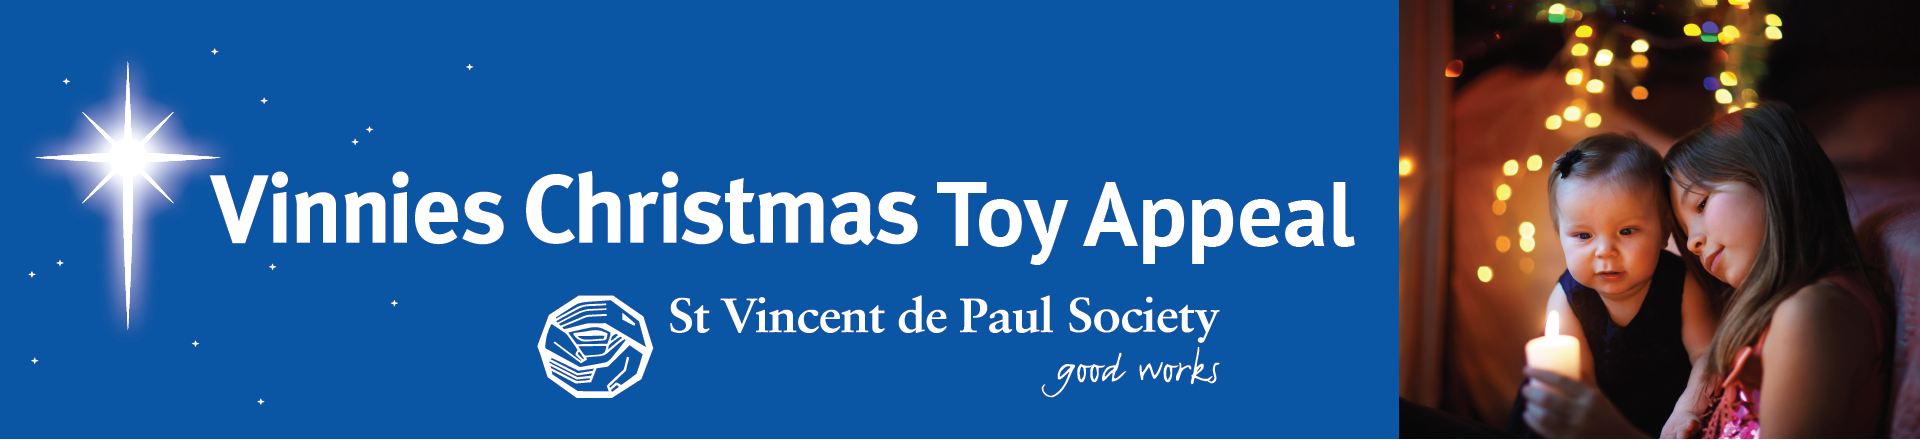 - Vinnies Christmas Gift Appeal - SA